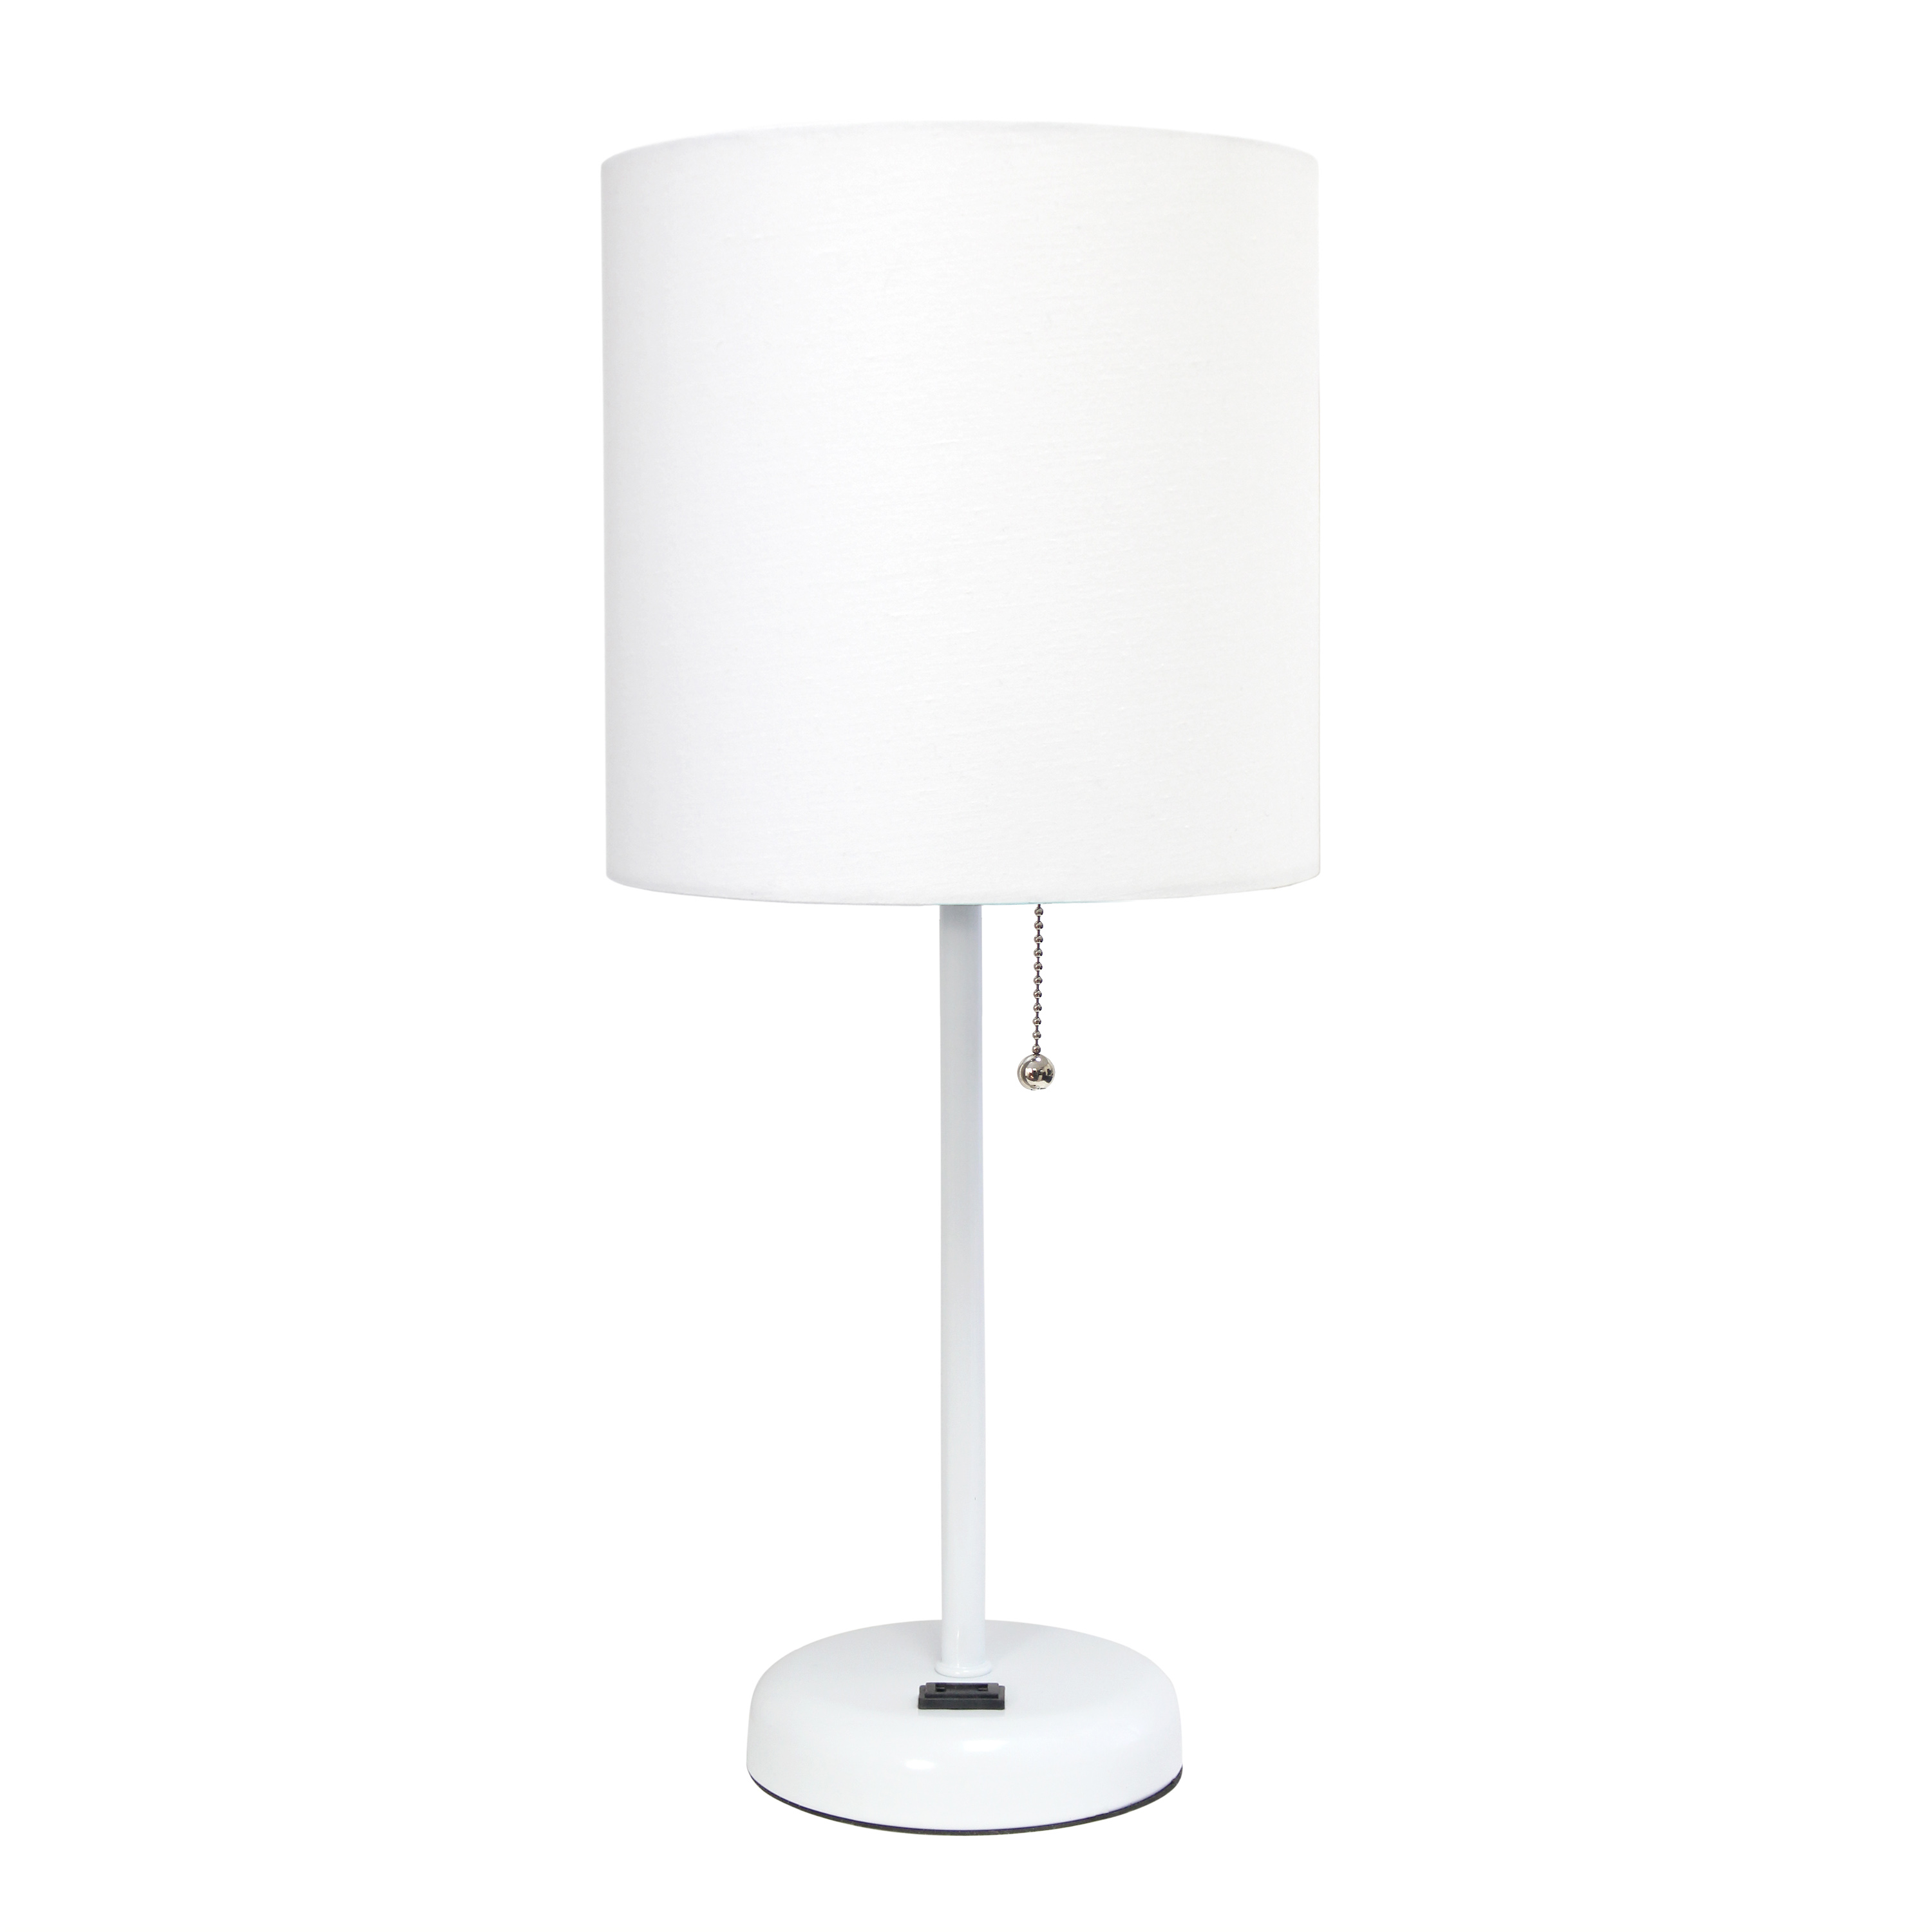 LimeLights White Stick Lamp with Charging Outlet and Fabric Shade, White